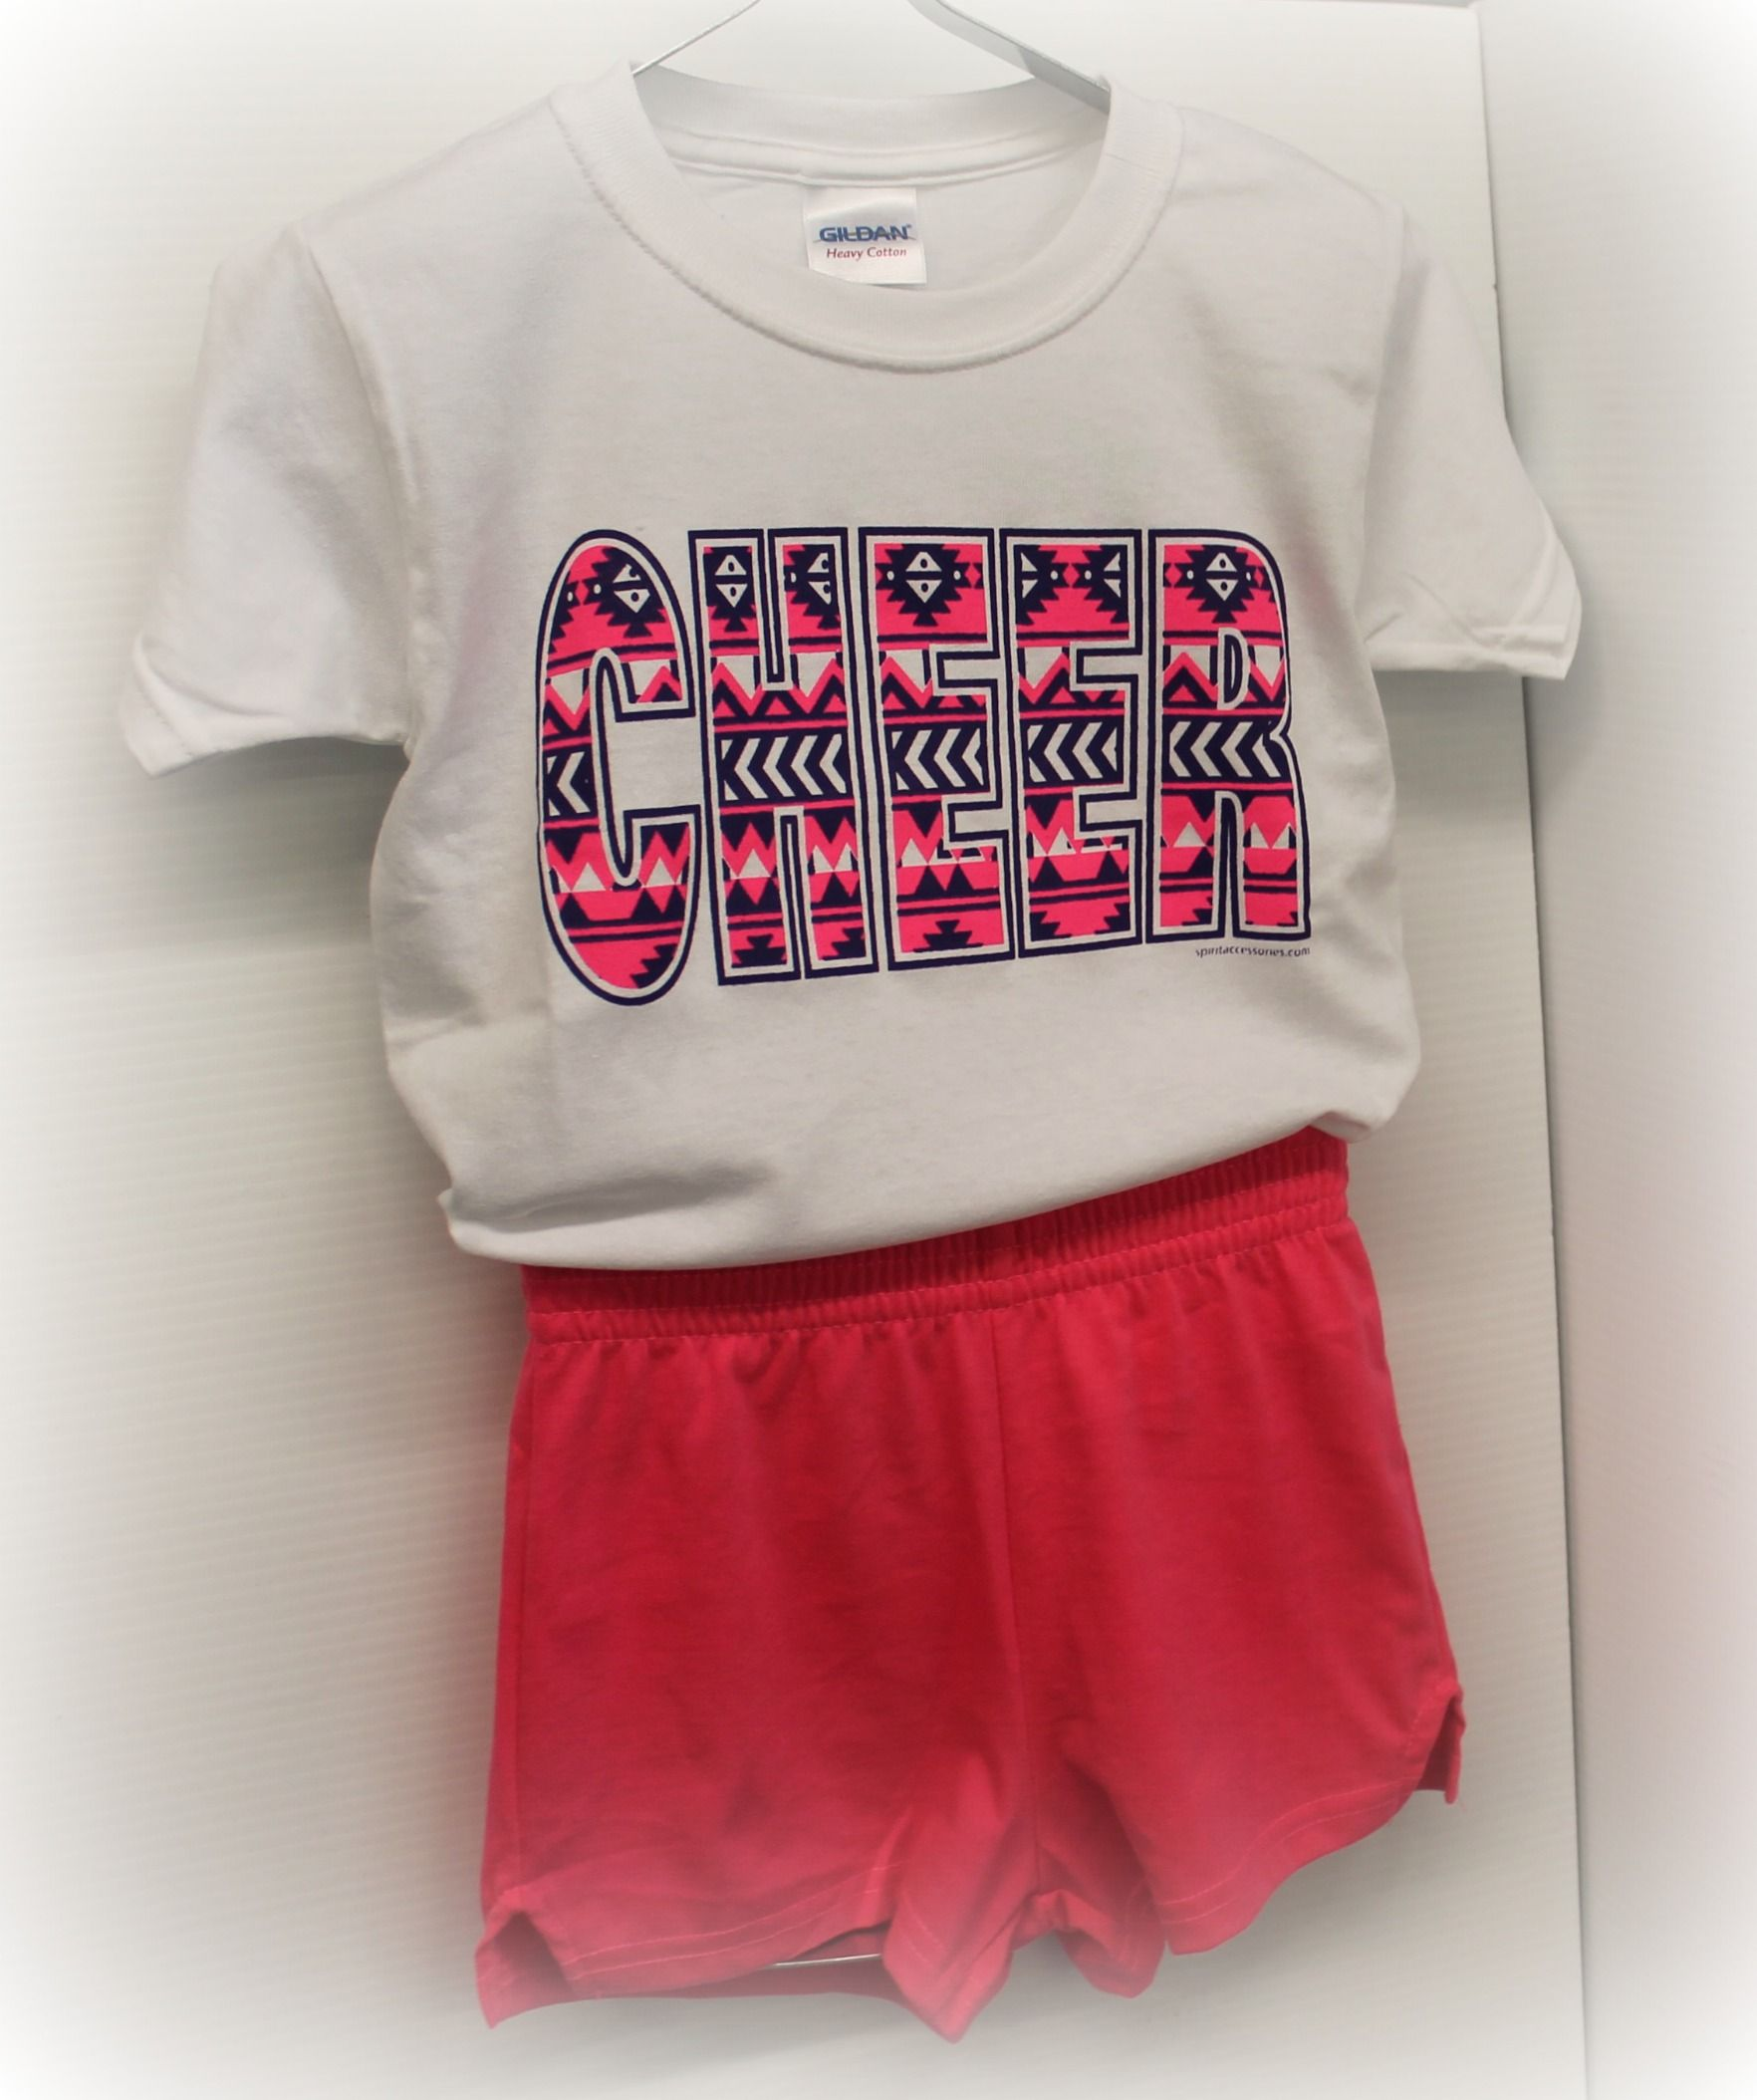 60b603542 Cheerleader Tee Shirts and Cheer T Shirts that include Custom Designs are  perfect for cheerleading practice, cheer camps and everyday casual  occasions!